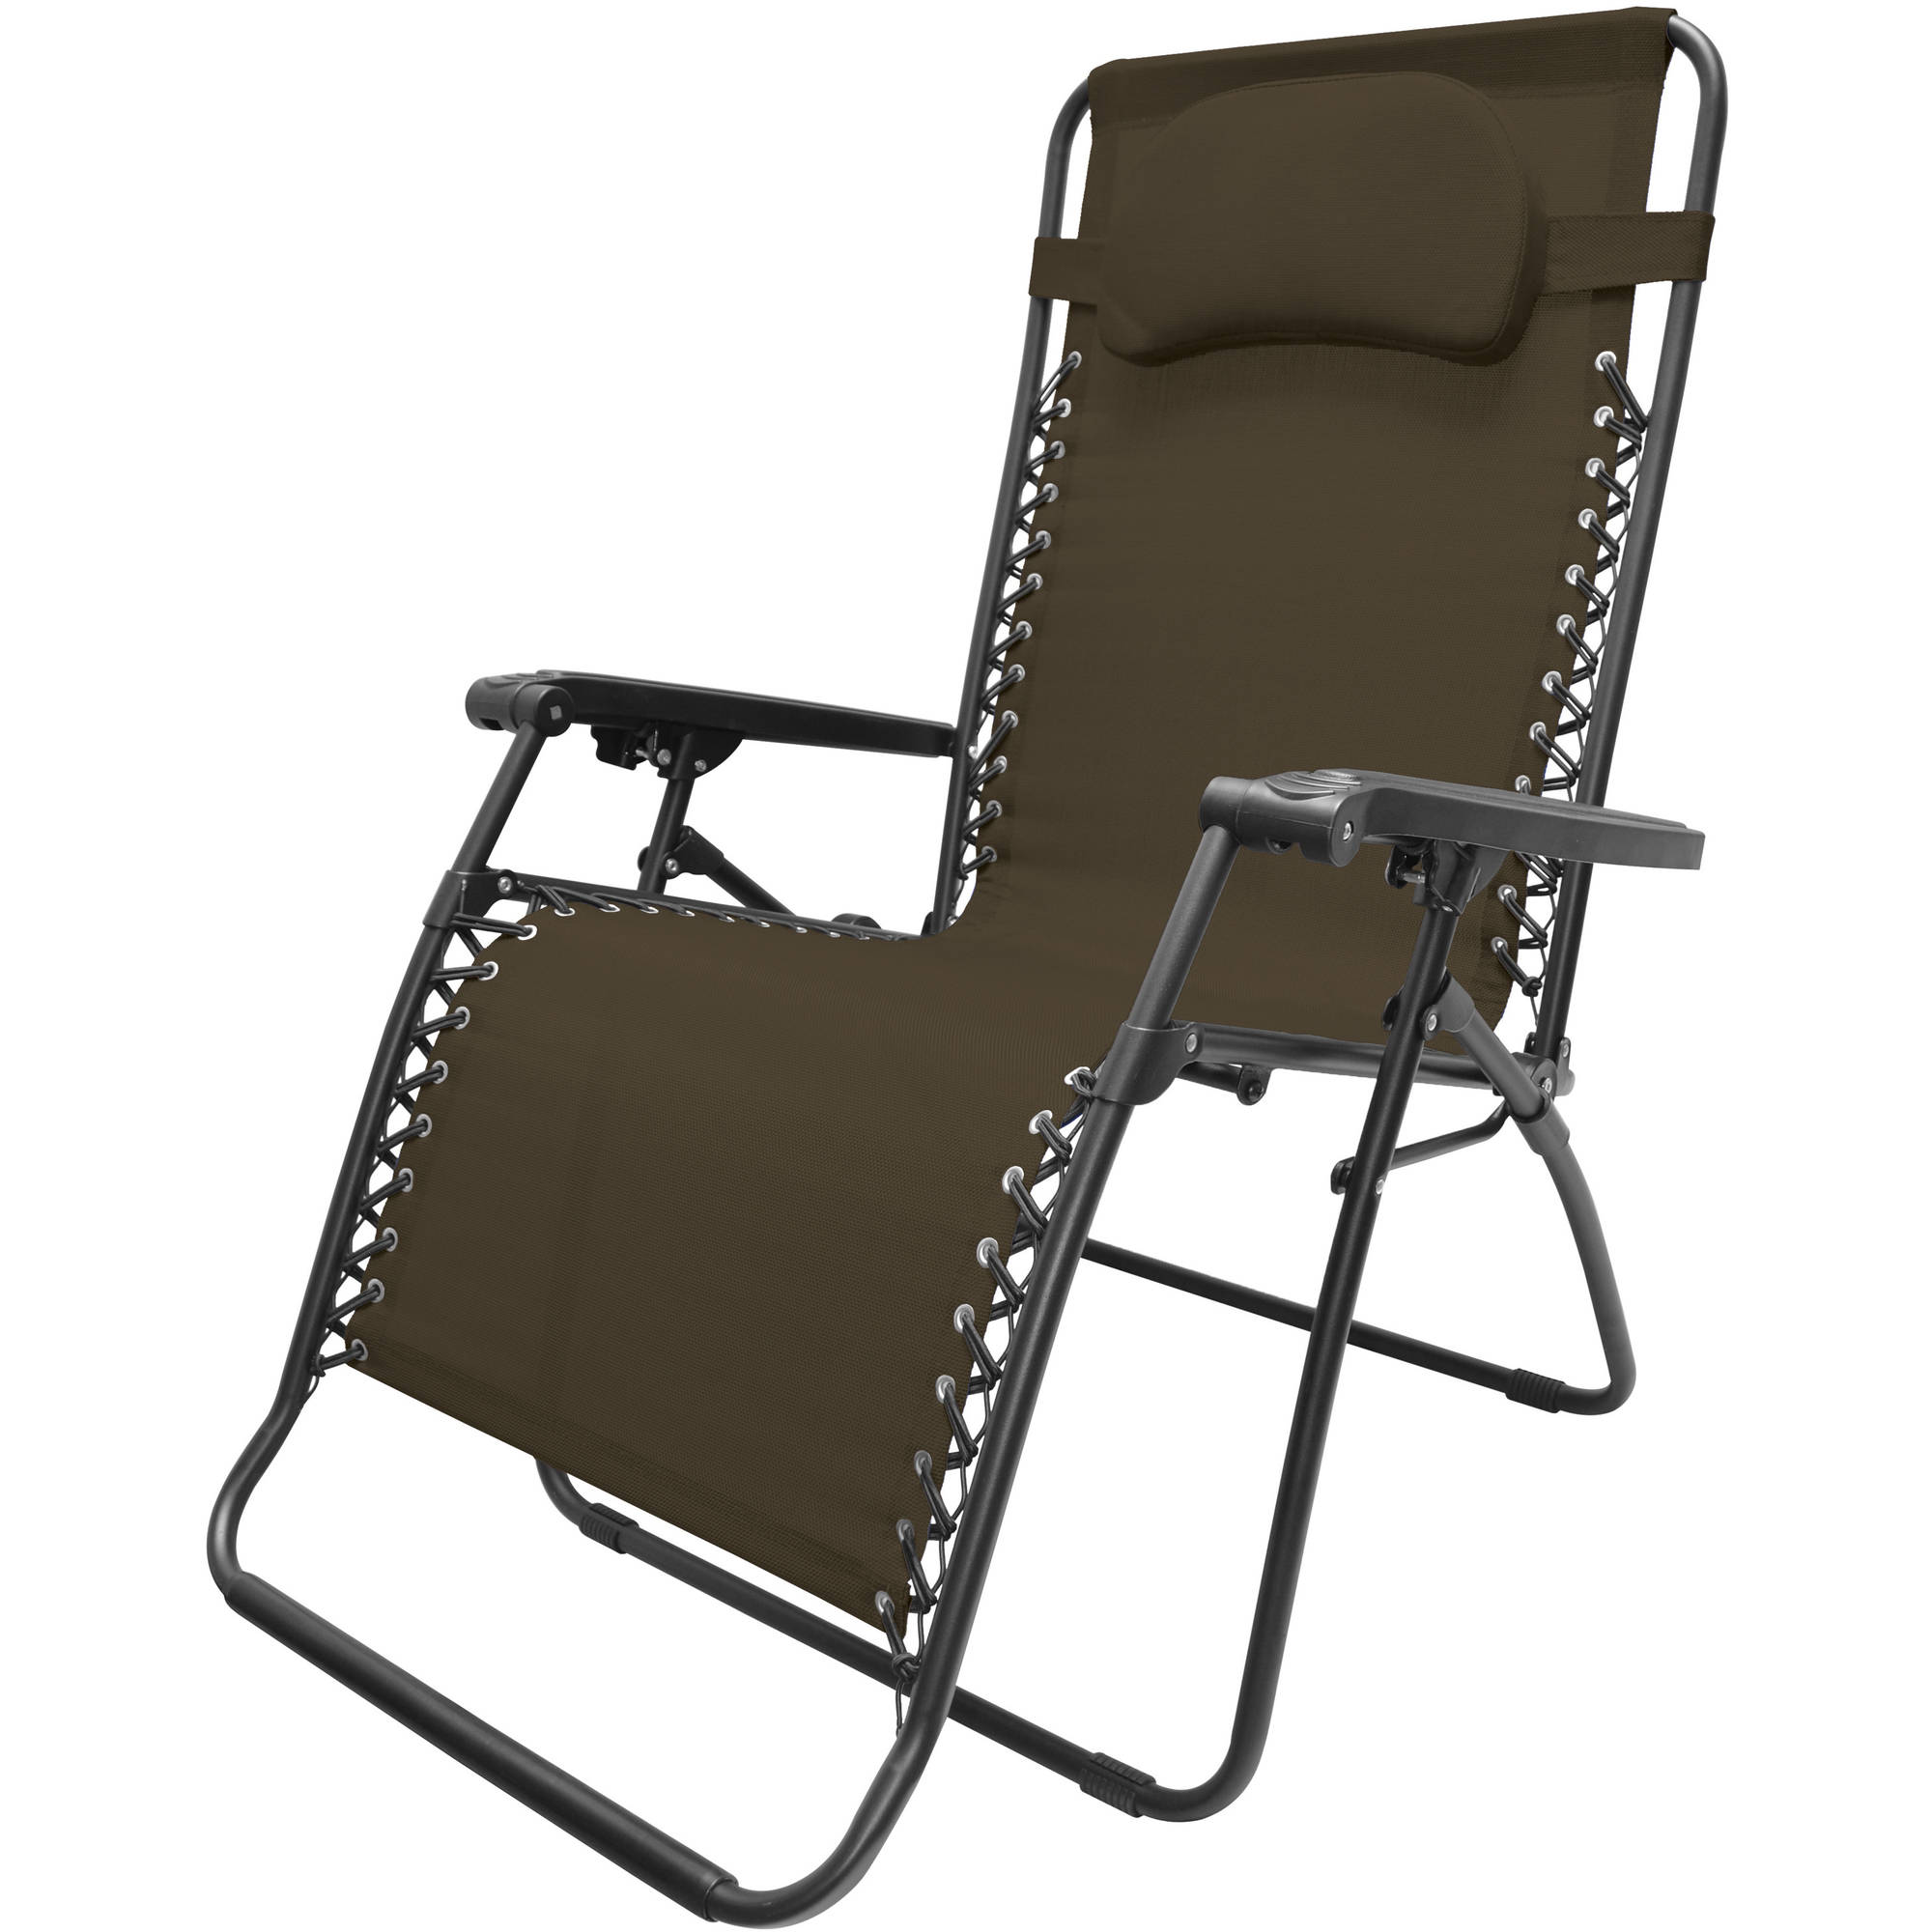 Caravan Sports Oversized Infinity Zero Gravity Chair Brown - Walmart.com  sc 1 st  Walmart & Caravan Sports Oversized Infinity Zero Gravity Chair Brown ...